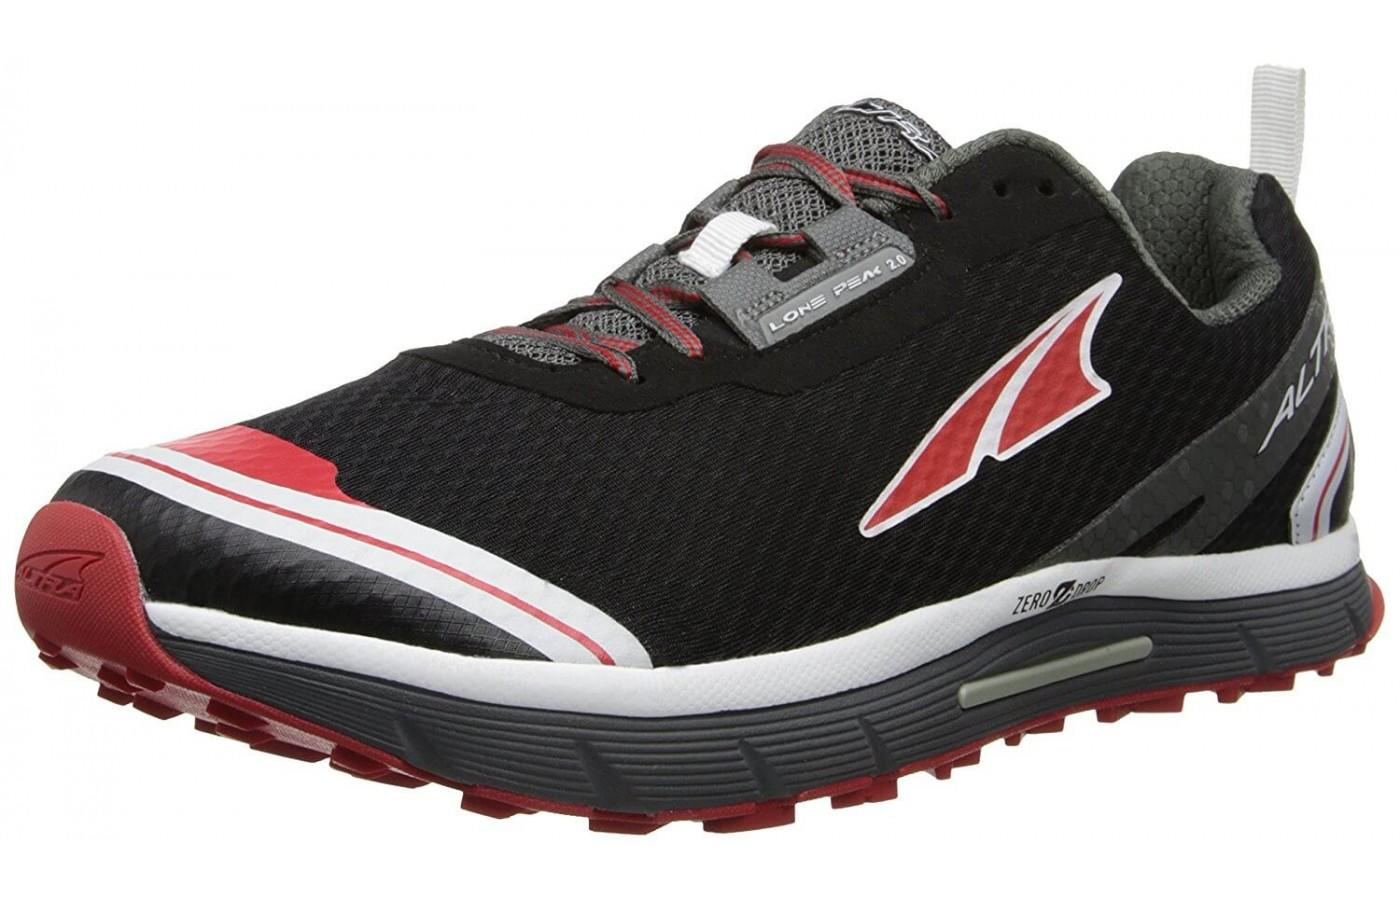 This shoe features a comfortable ride.